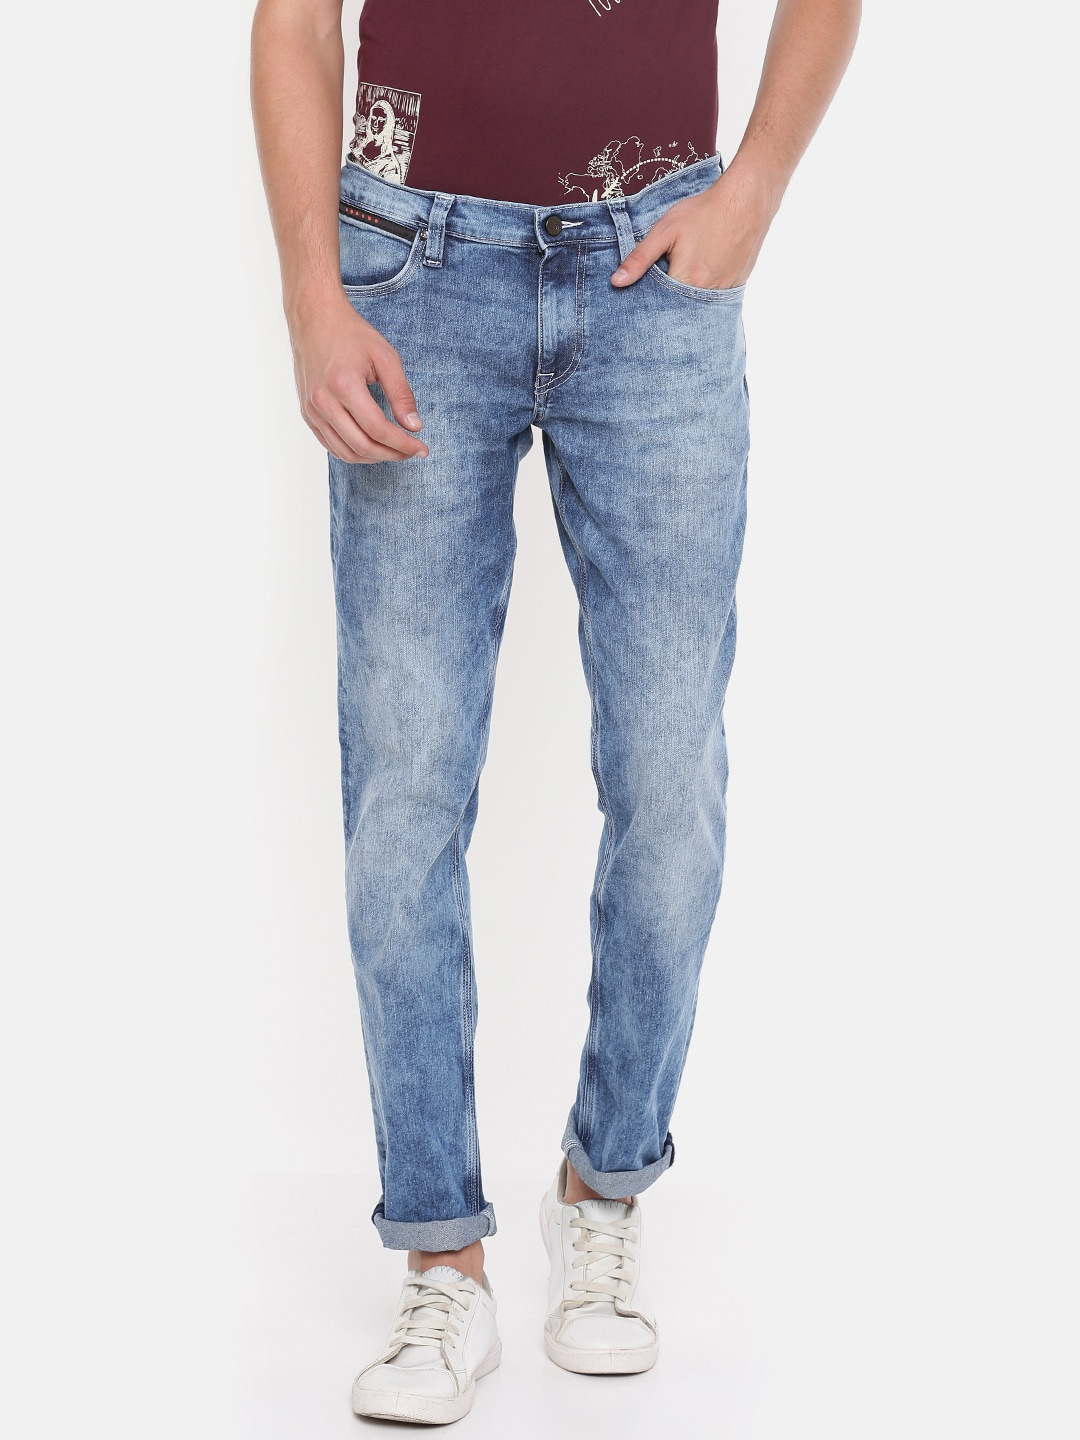 To acquire Rise low ultra jeans men photo pictures trends